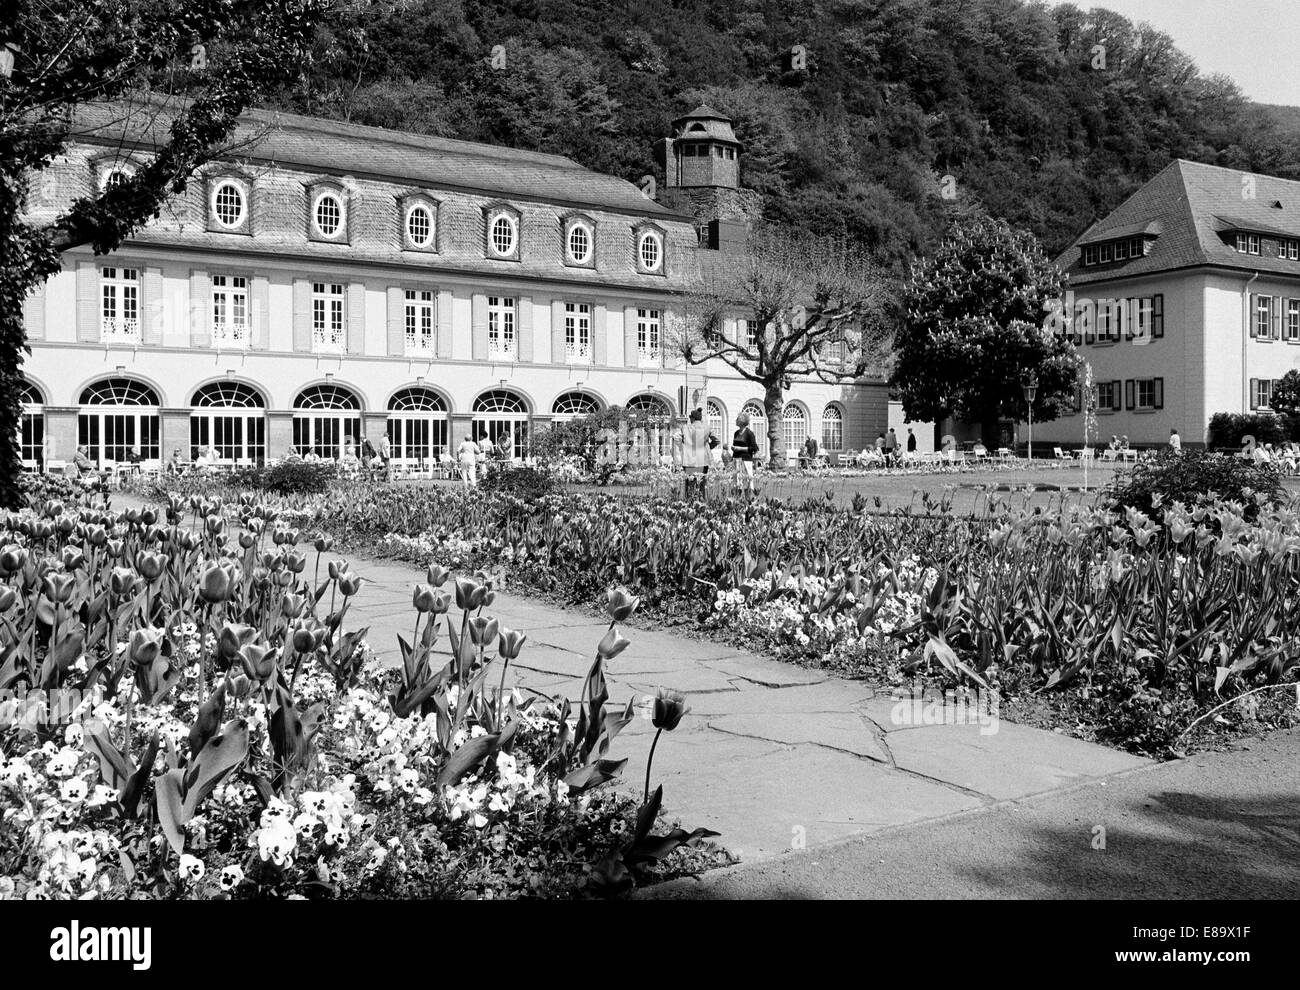 Deko Bad Bertrich Blume Black And White Stock Photos Images Alamy